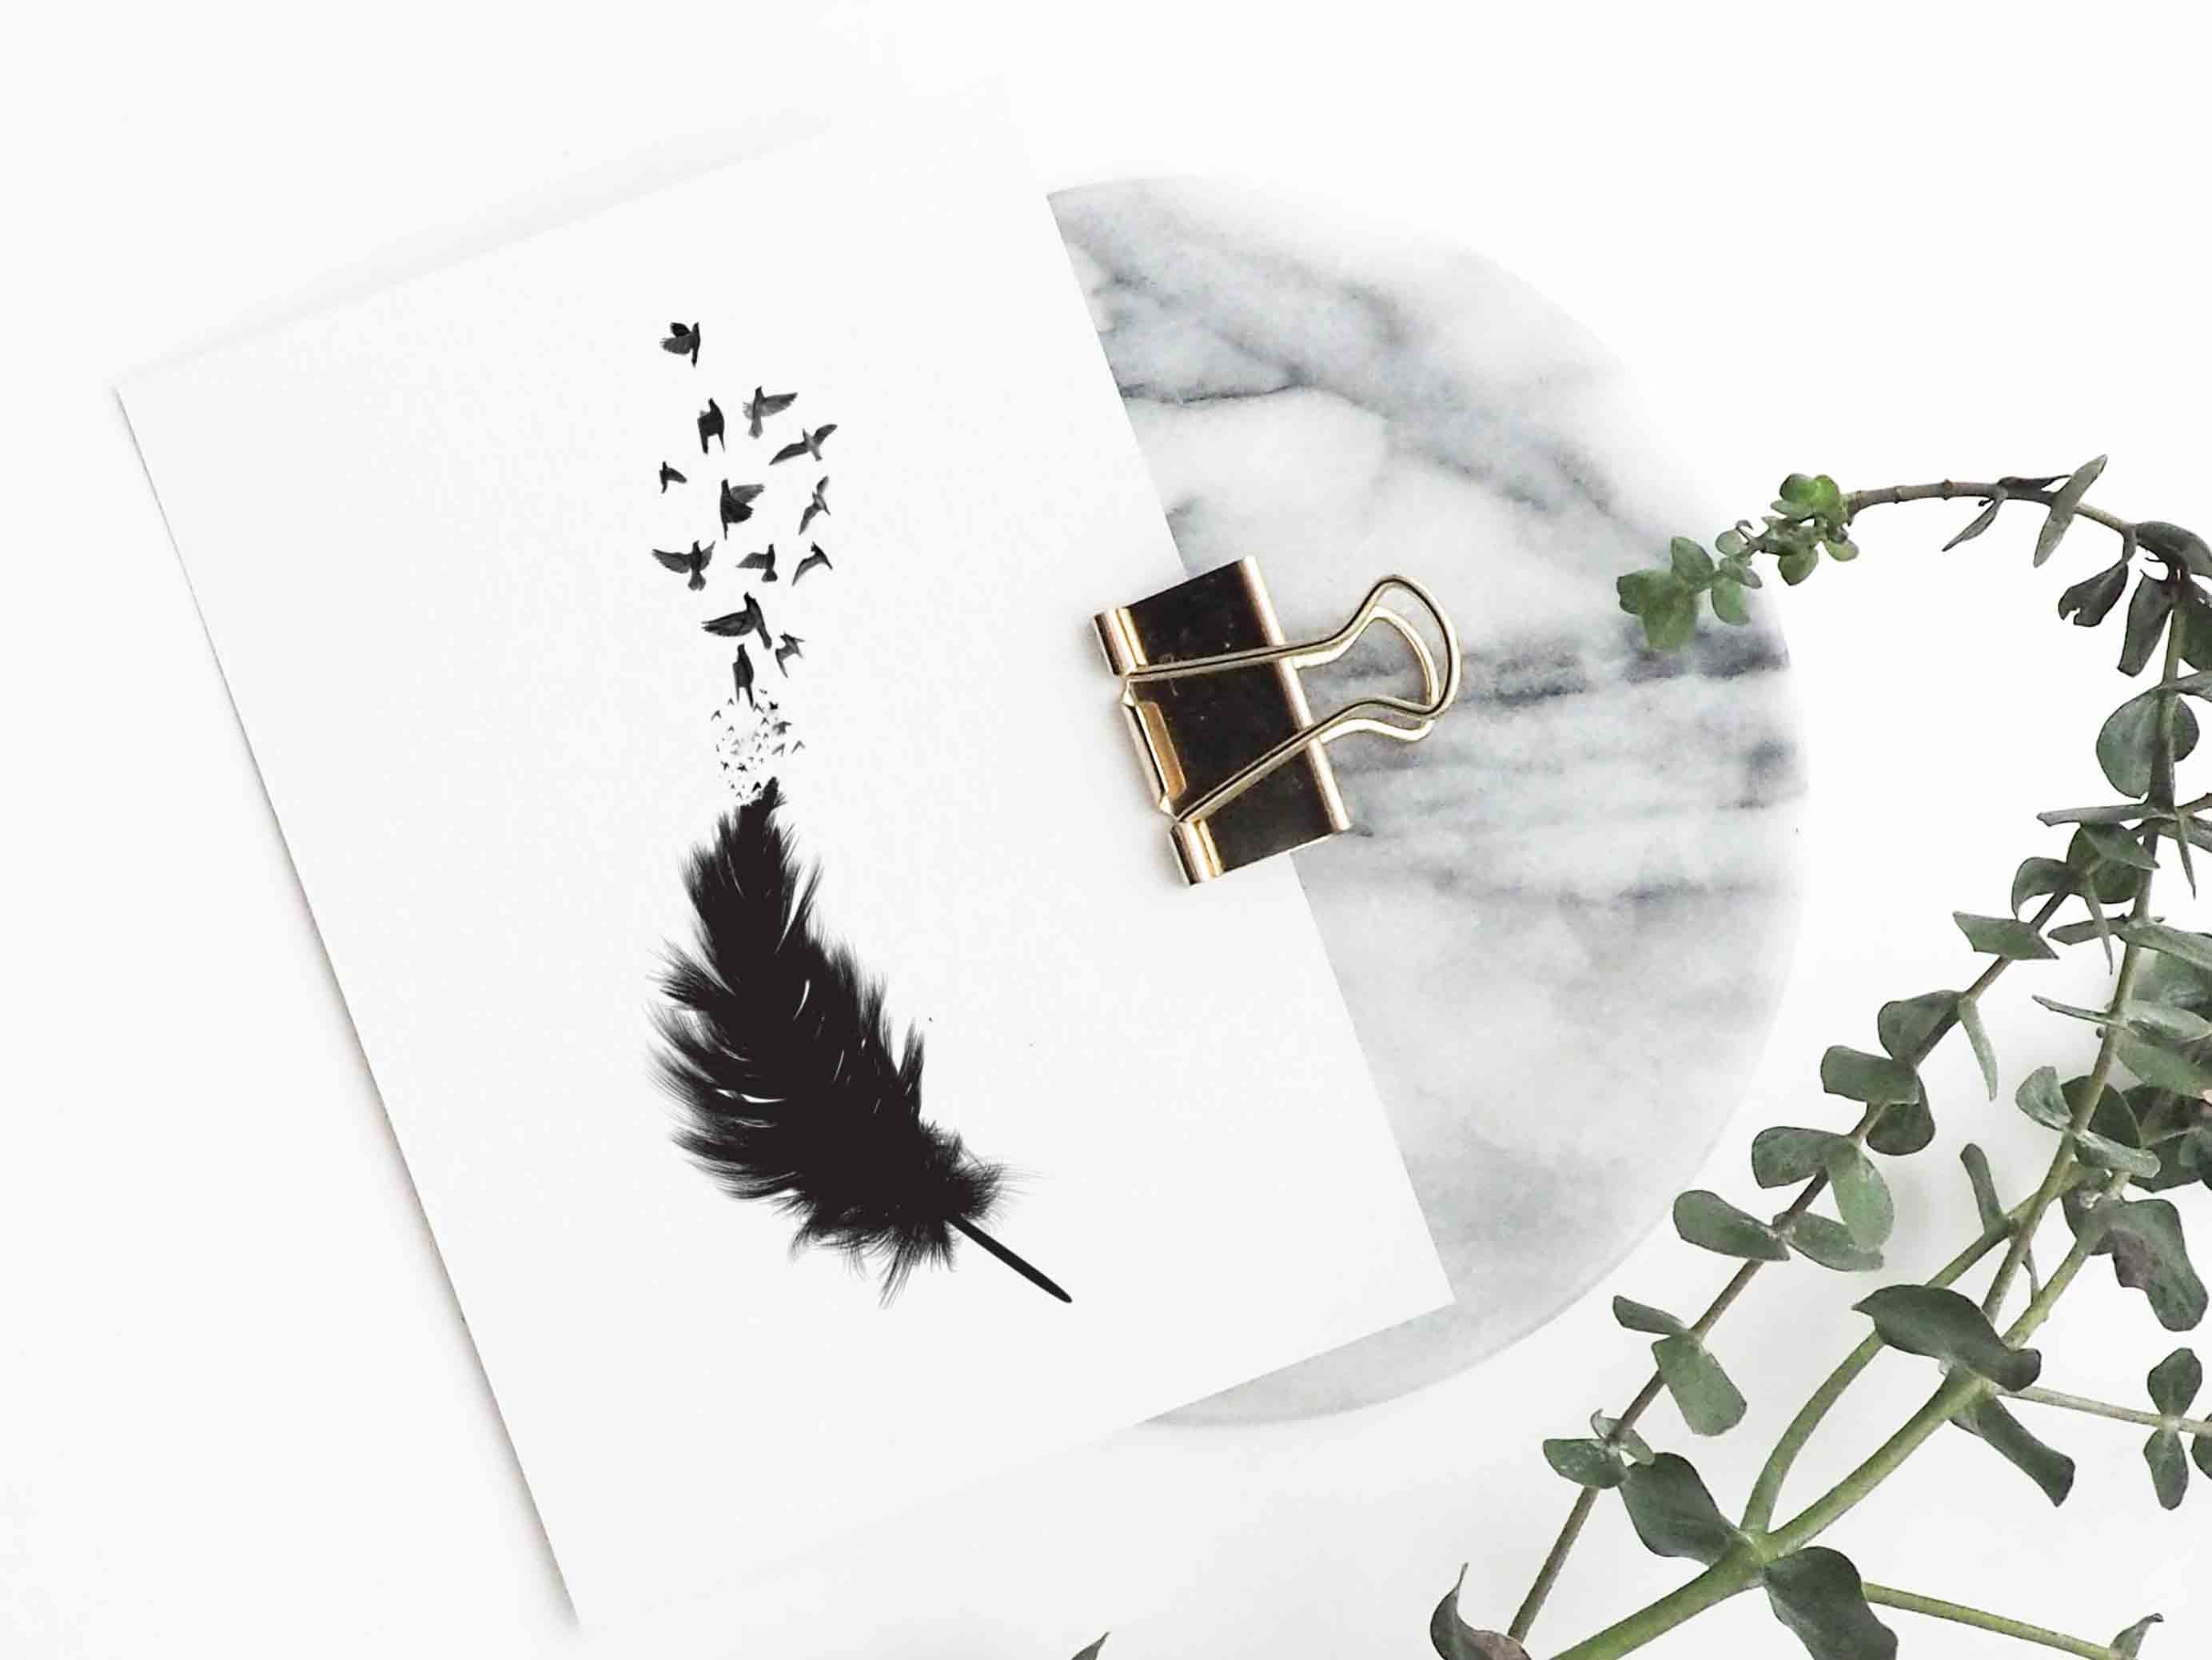 Birds flocking from a feather in black silhouette designer temporary tattoo